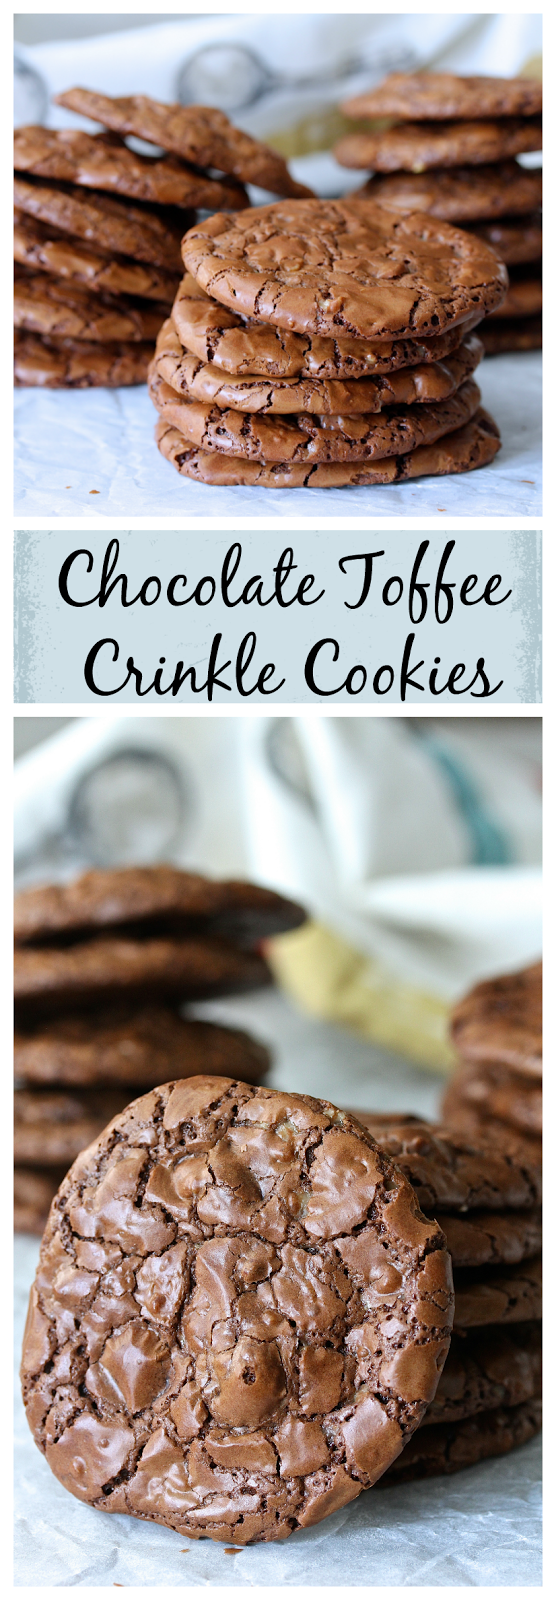 These Chocolate-Toffee Crinkle Cookies are essentially just soft and rich brownies or truffles in a cookie form.